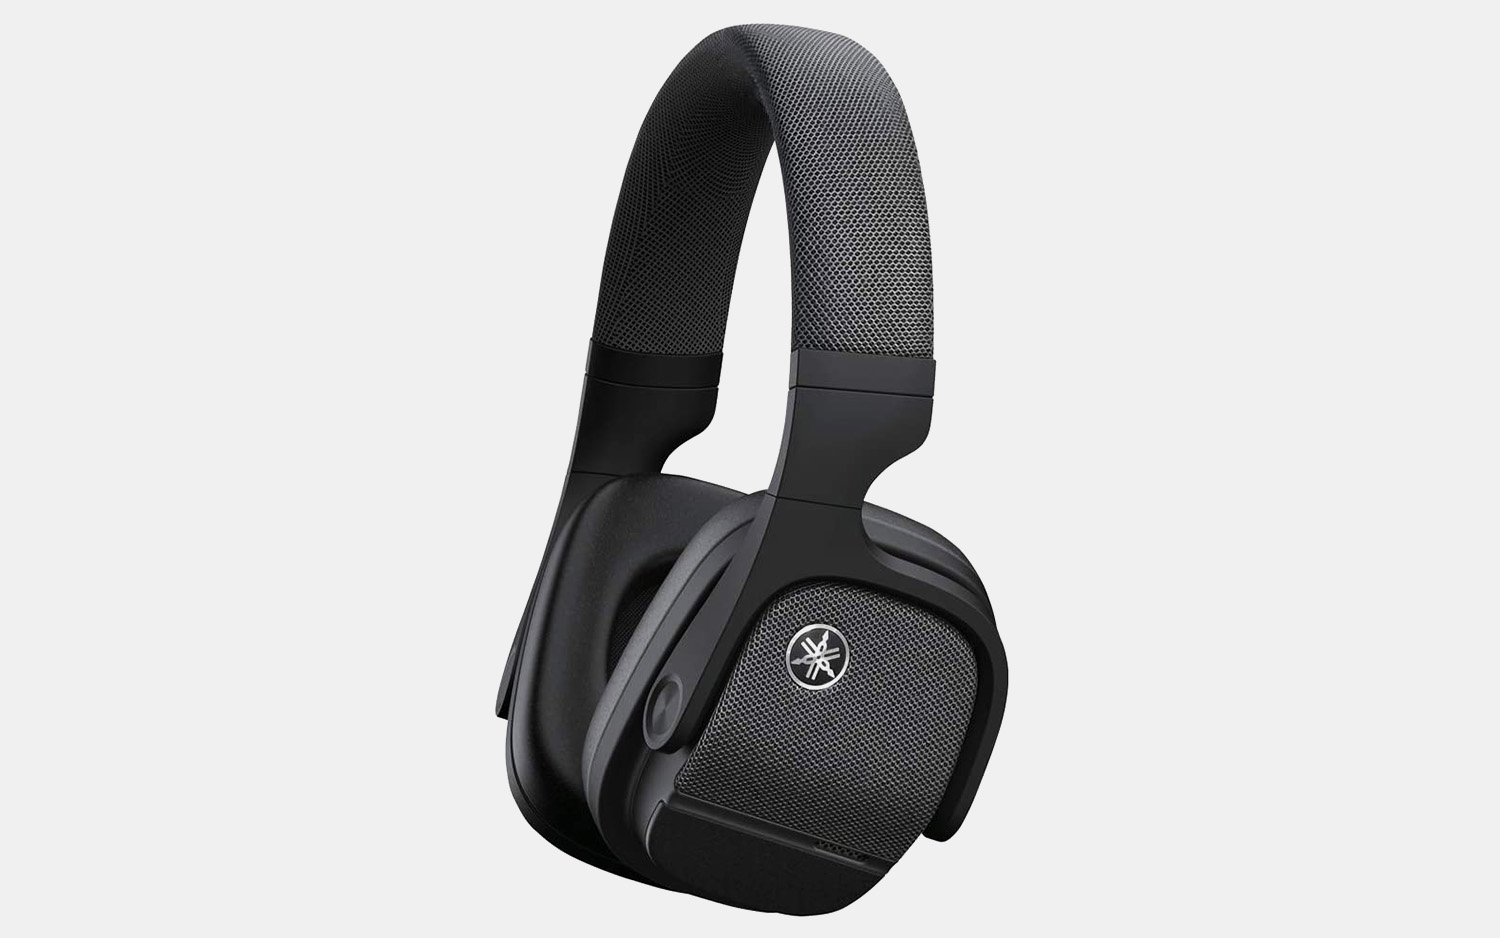 Yamaha YH-L700A Wireless Noise-Cancelling Headphones